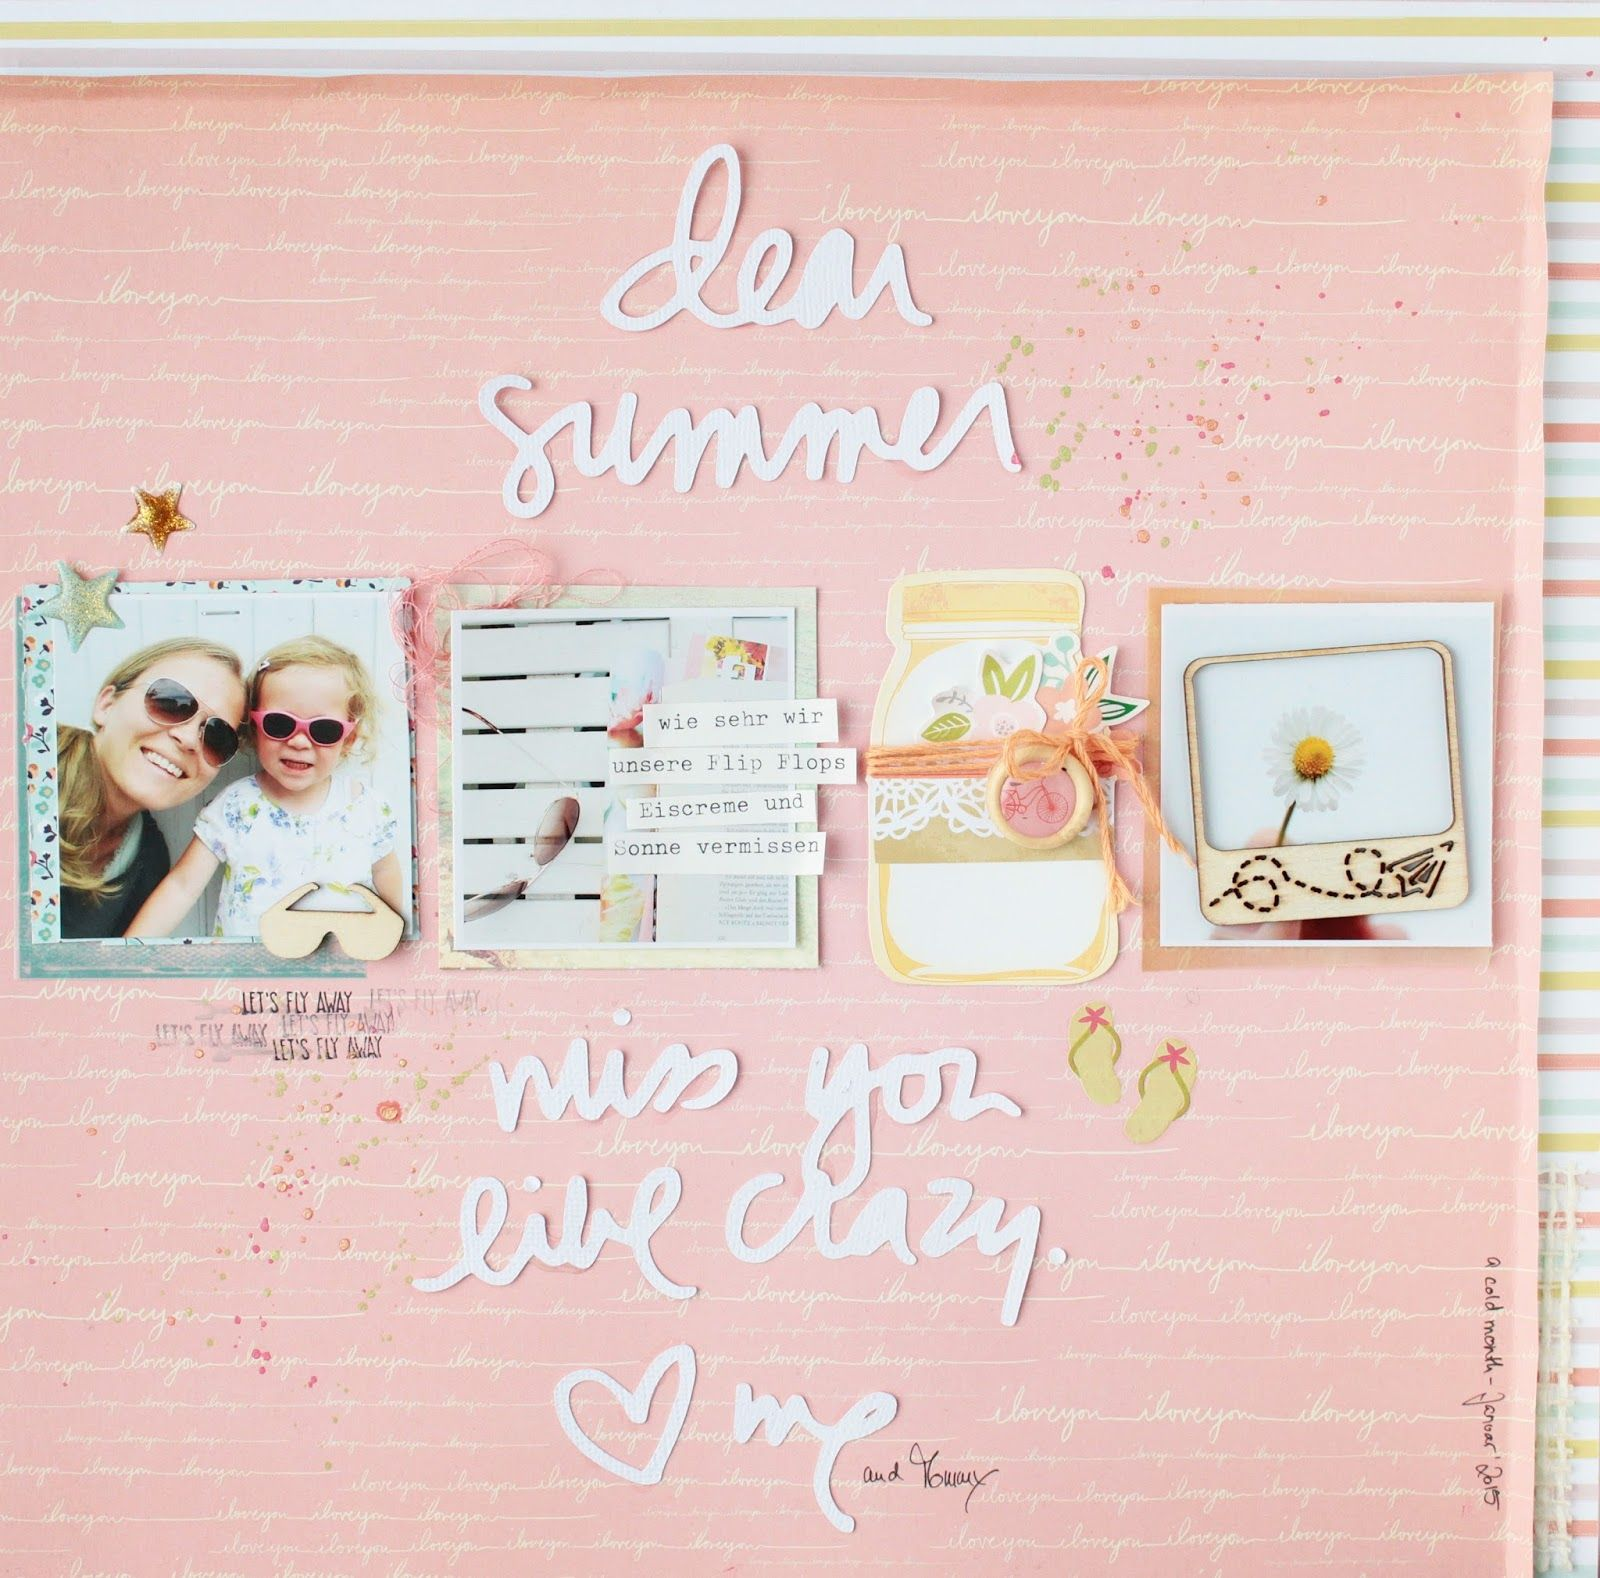 Fotoalbum Für Freund Gestalten Scrap Sweet Scrap Dear Summer Miss You Like Crazy